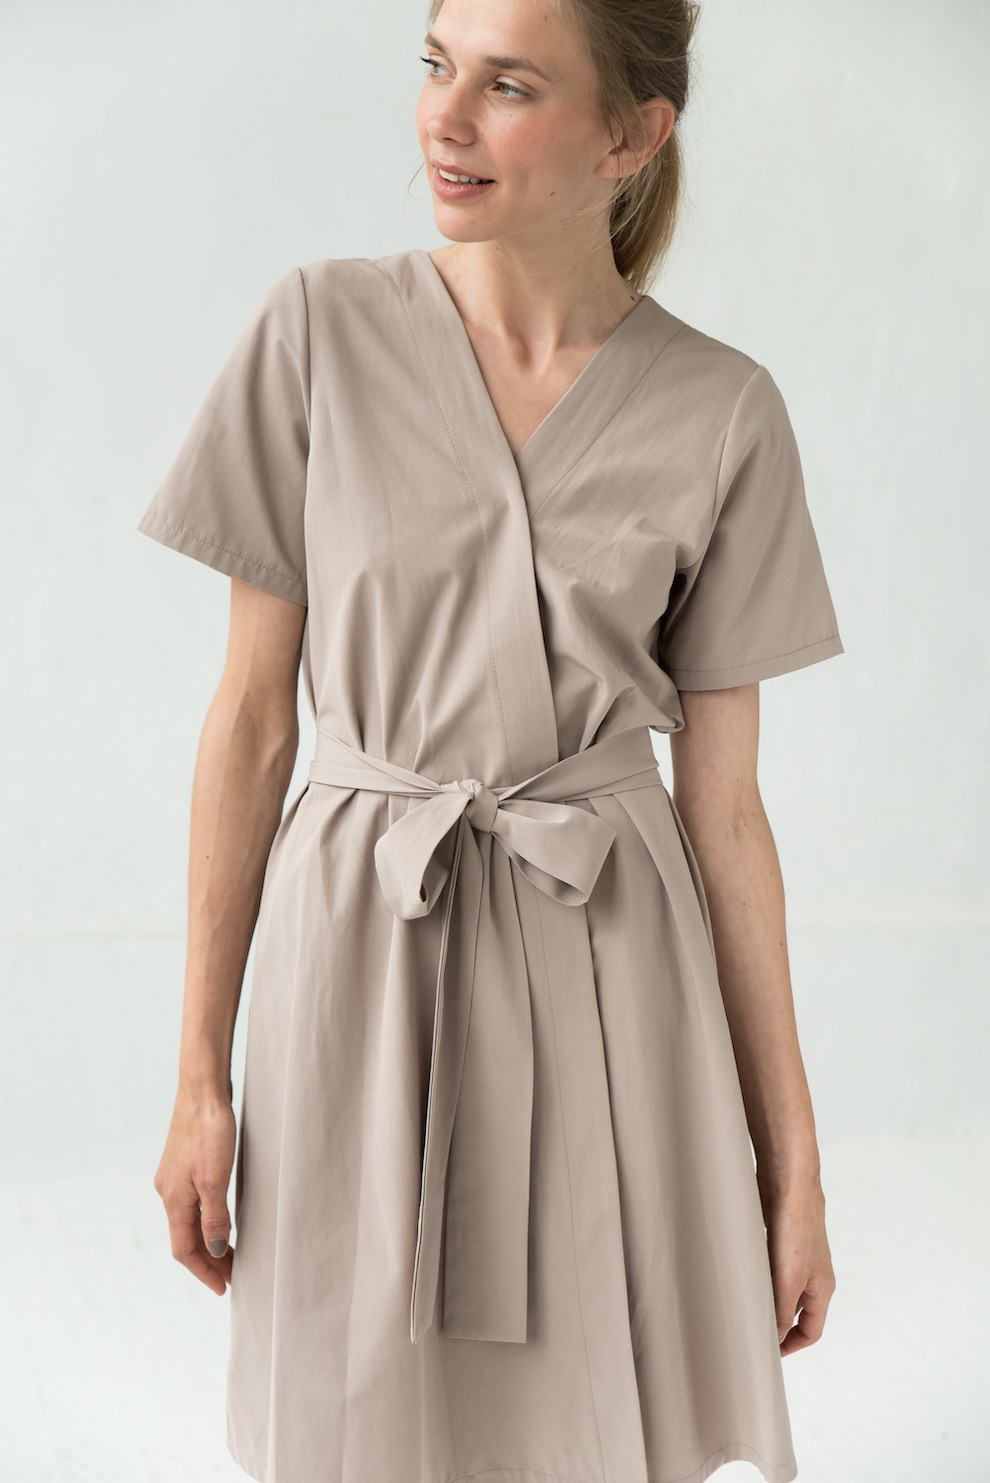 LeMuse sand SAND&DUNES CHLOE dress